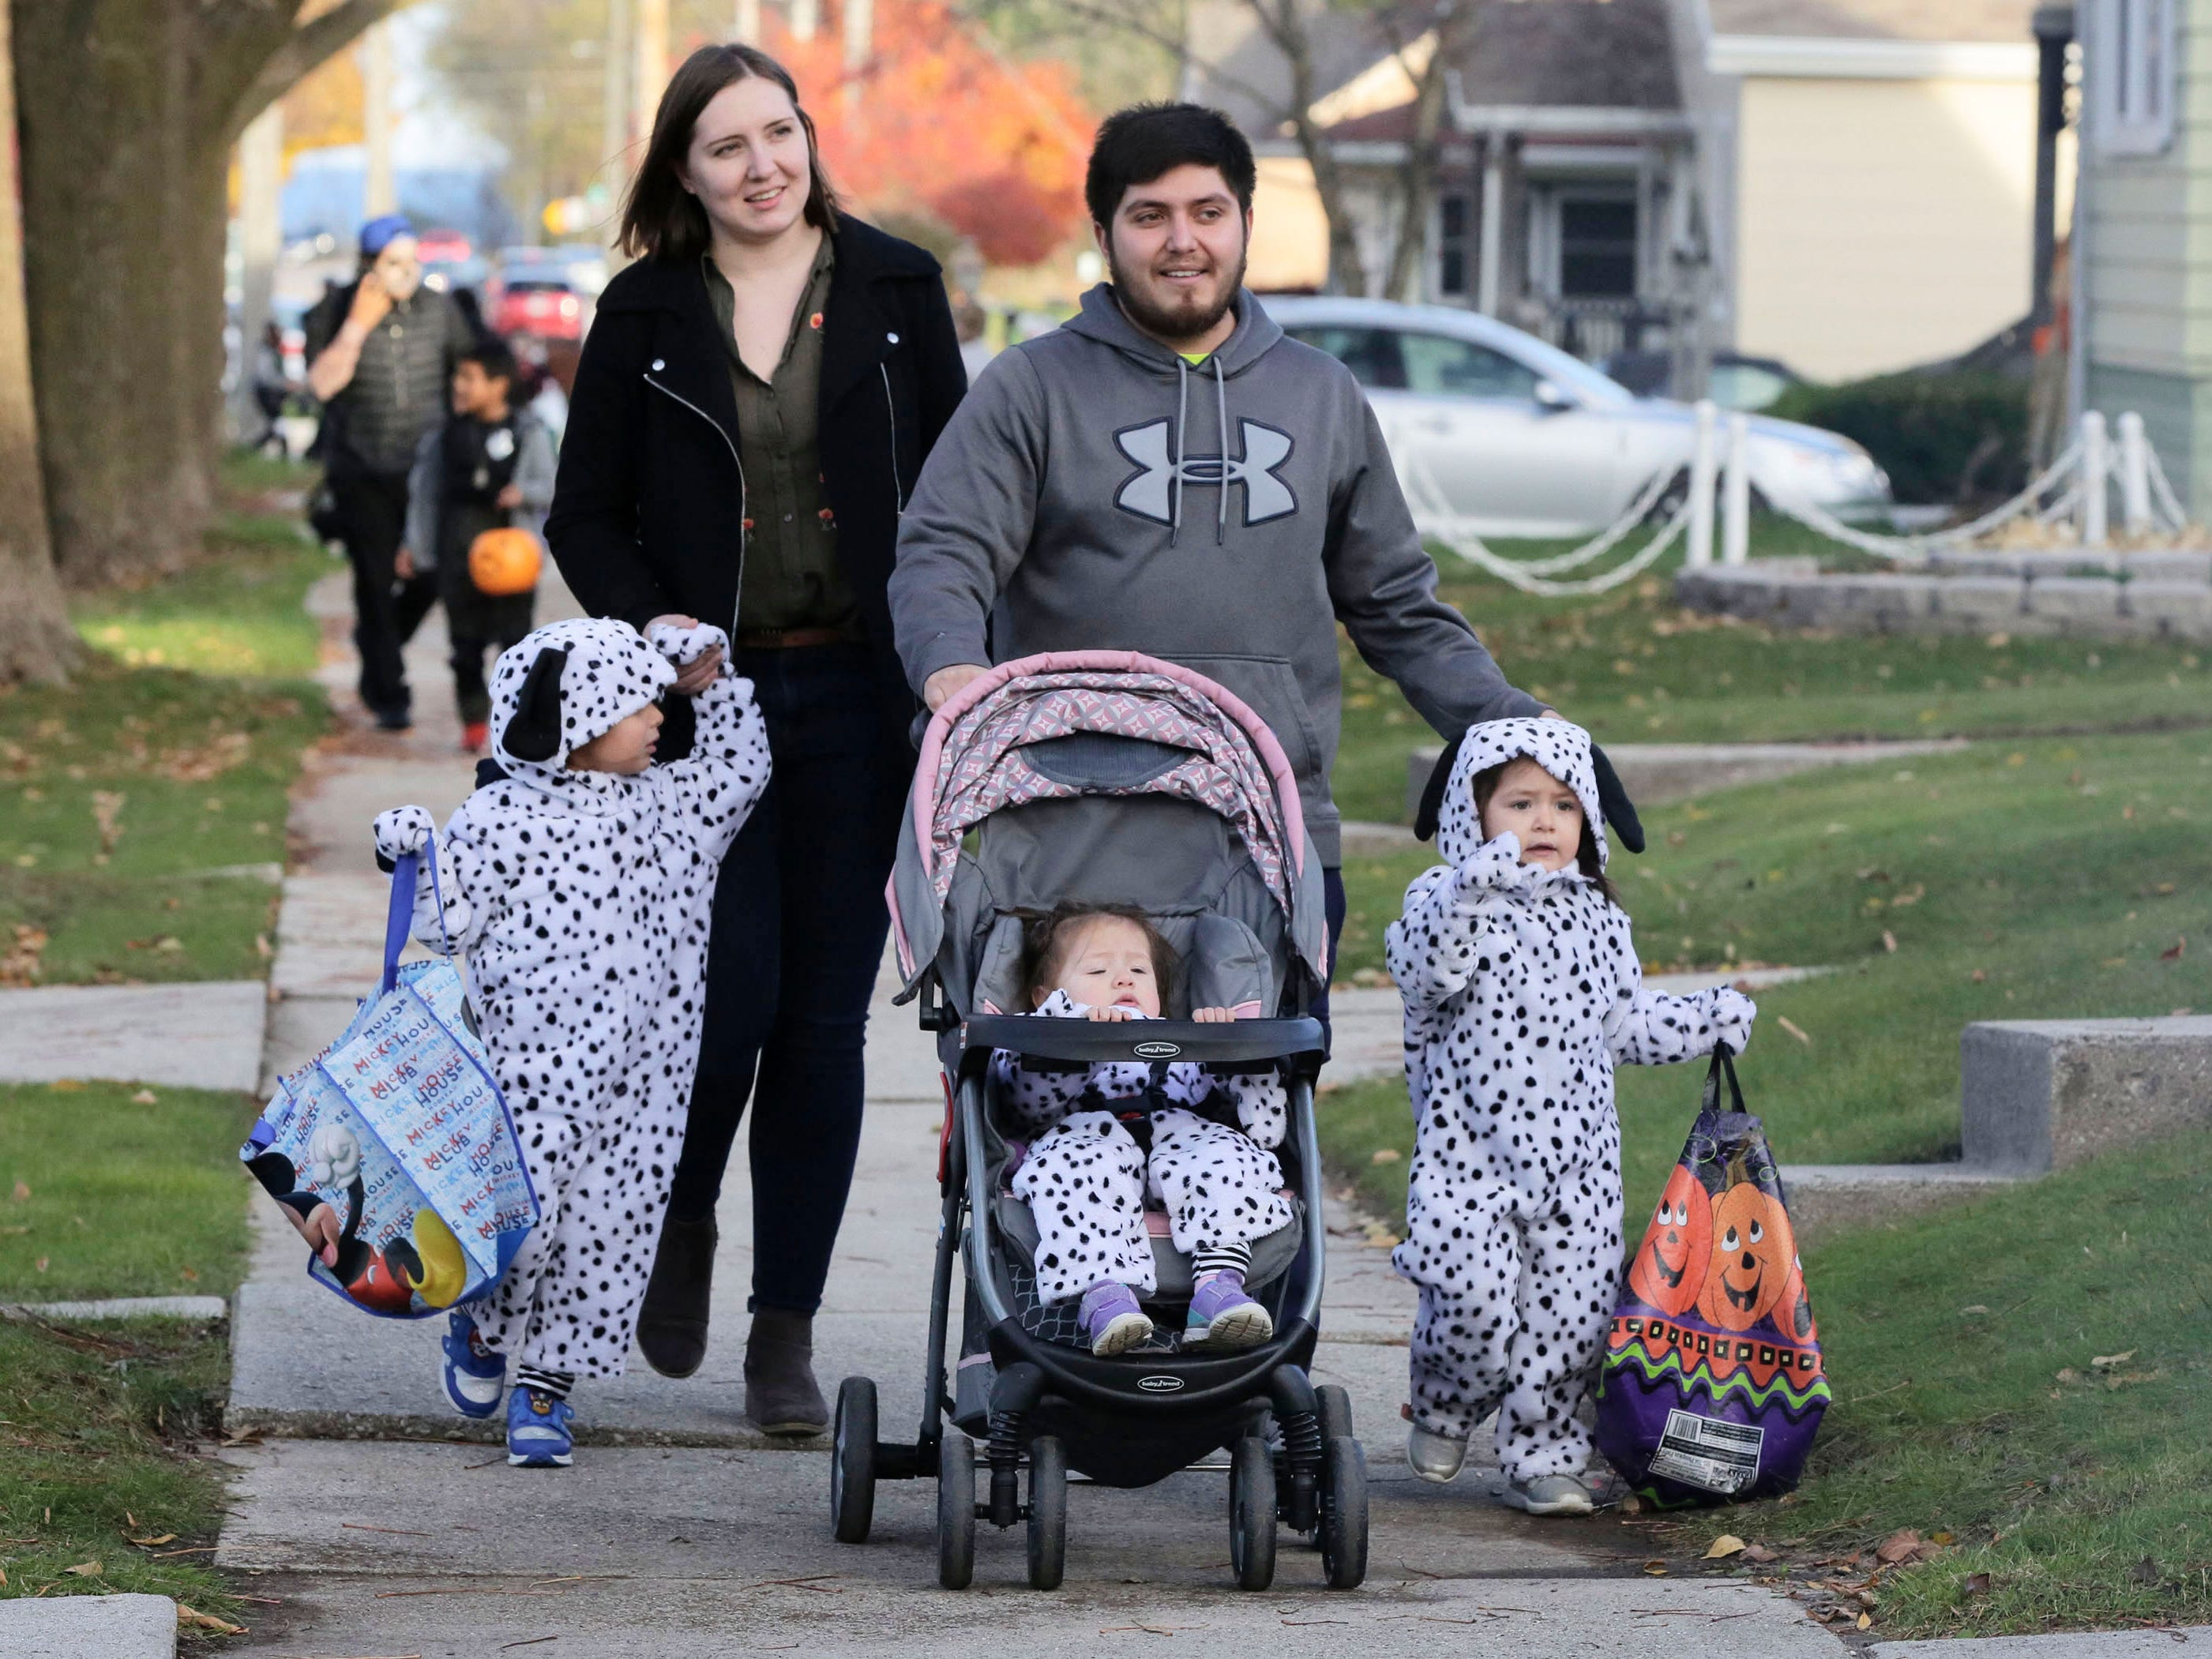 Eleanor Bonilla, 4, walks with her mom Katie Gibbs, her dad Martin Bonilla, her baby sister Anabelle, 1, and her other sister Daisy, 2, during Trick or Treat, Wednesday, October 31, 2018, in Sheboygan, Wis.